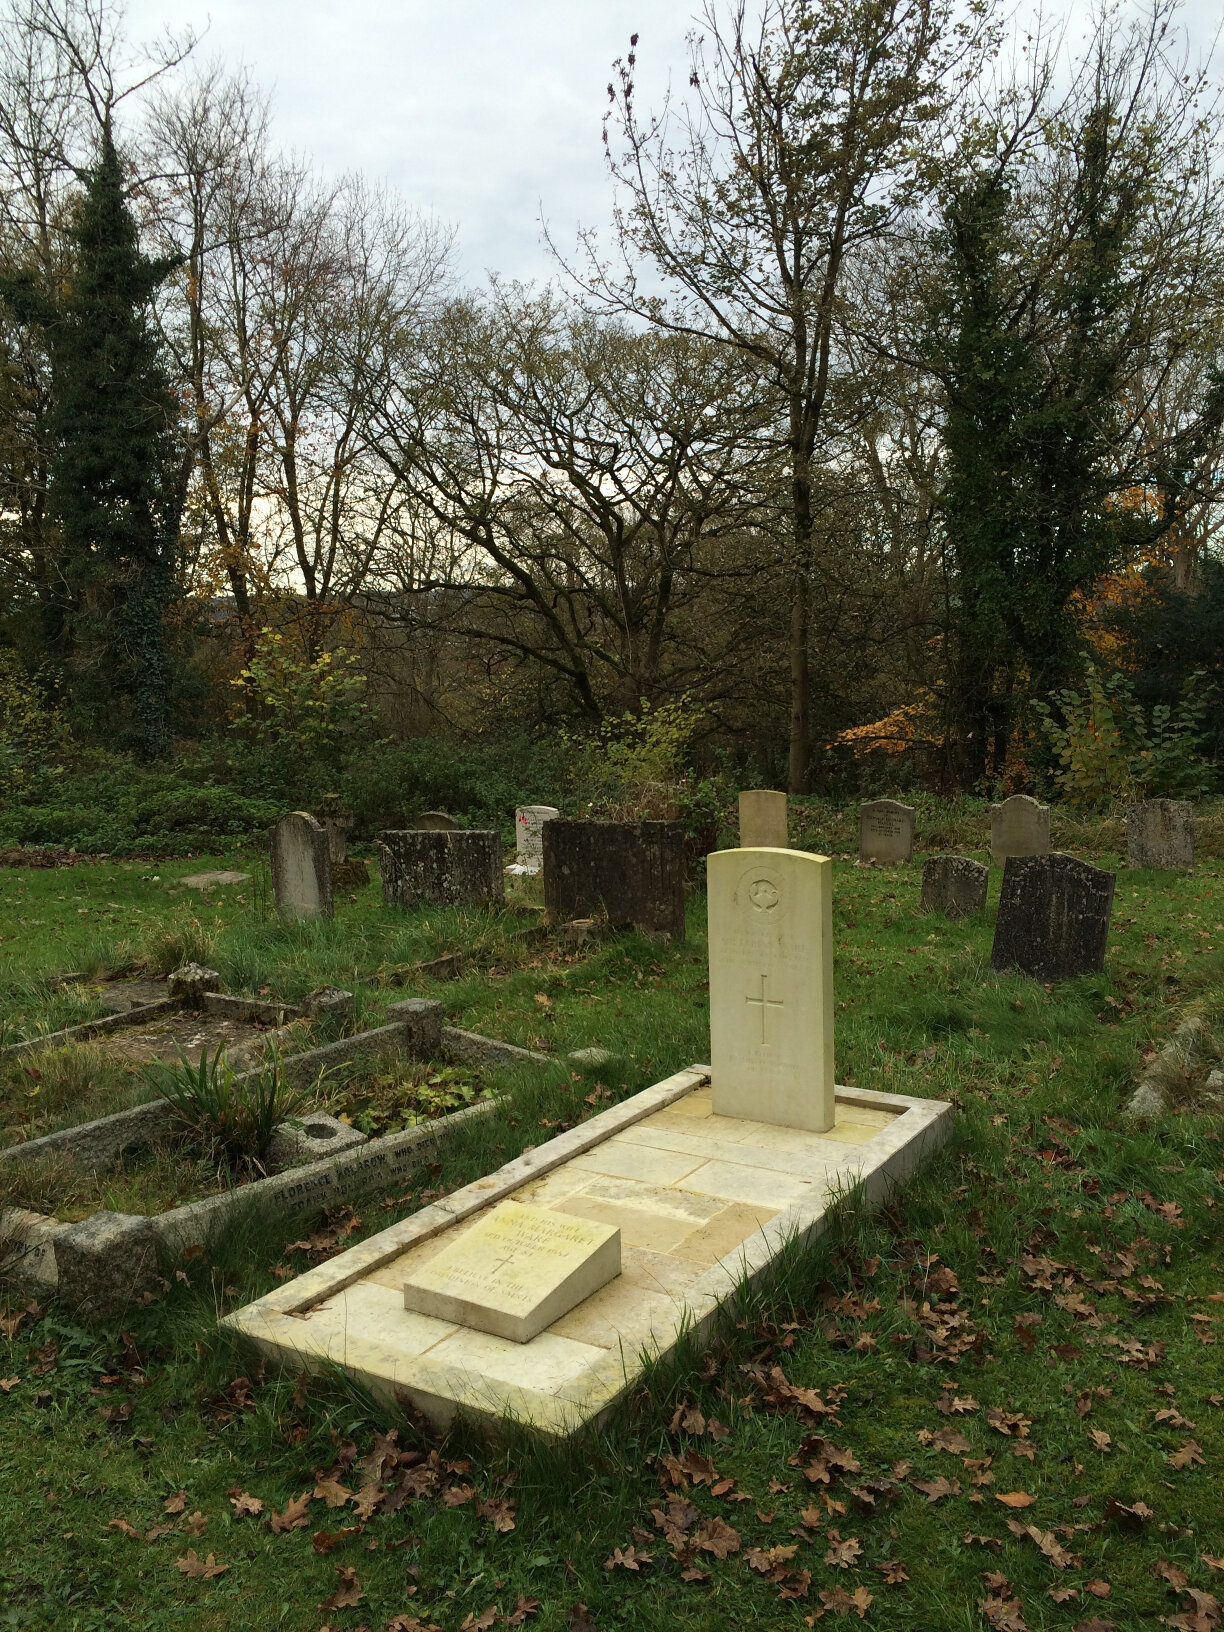 On seeing the grave of Sir Fabian Ware at Amberley (4)